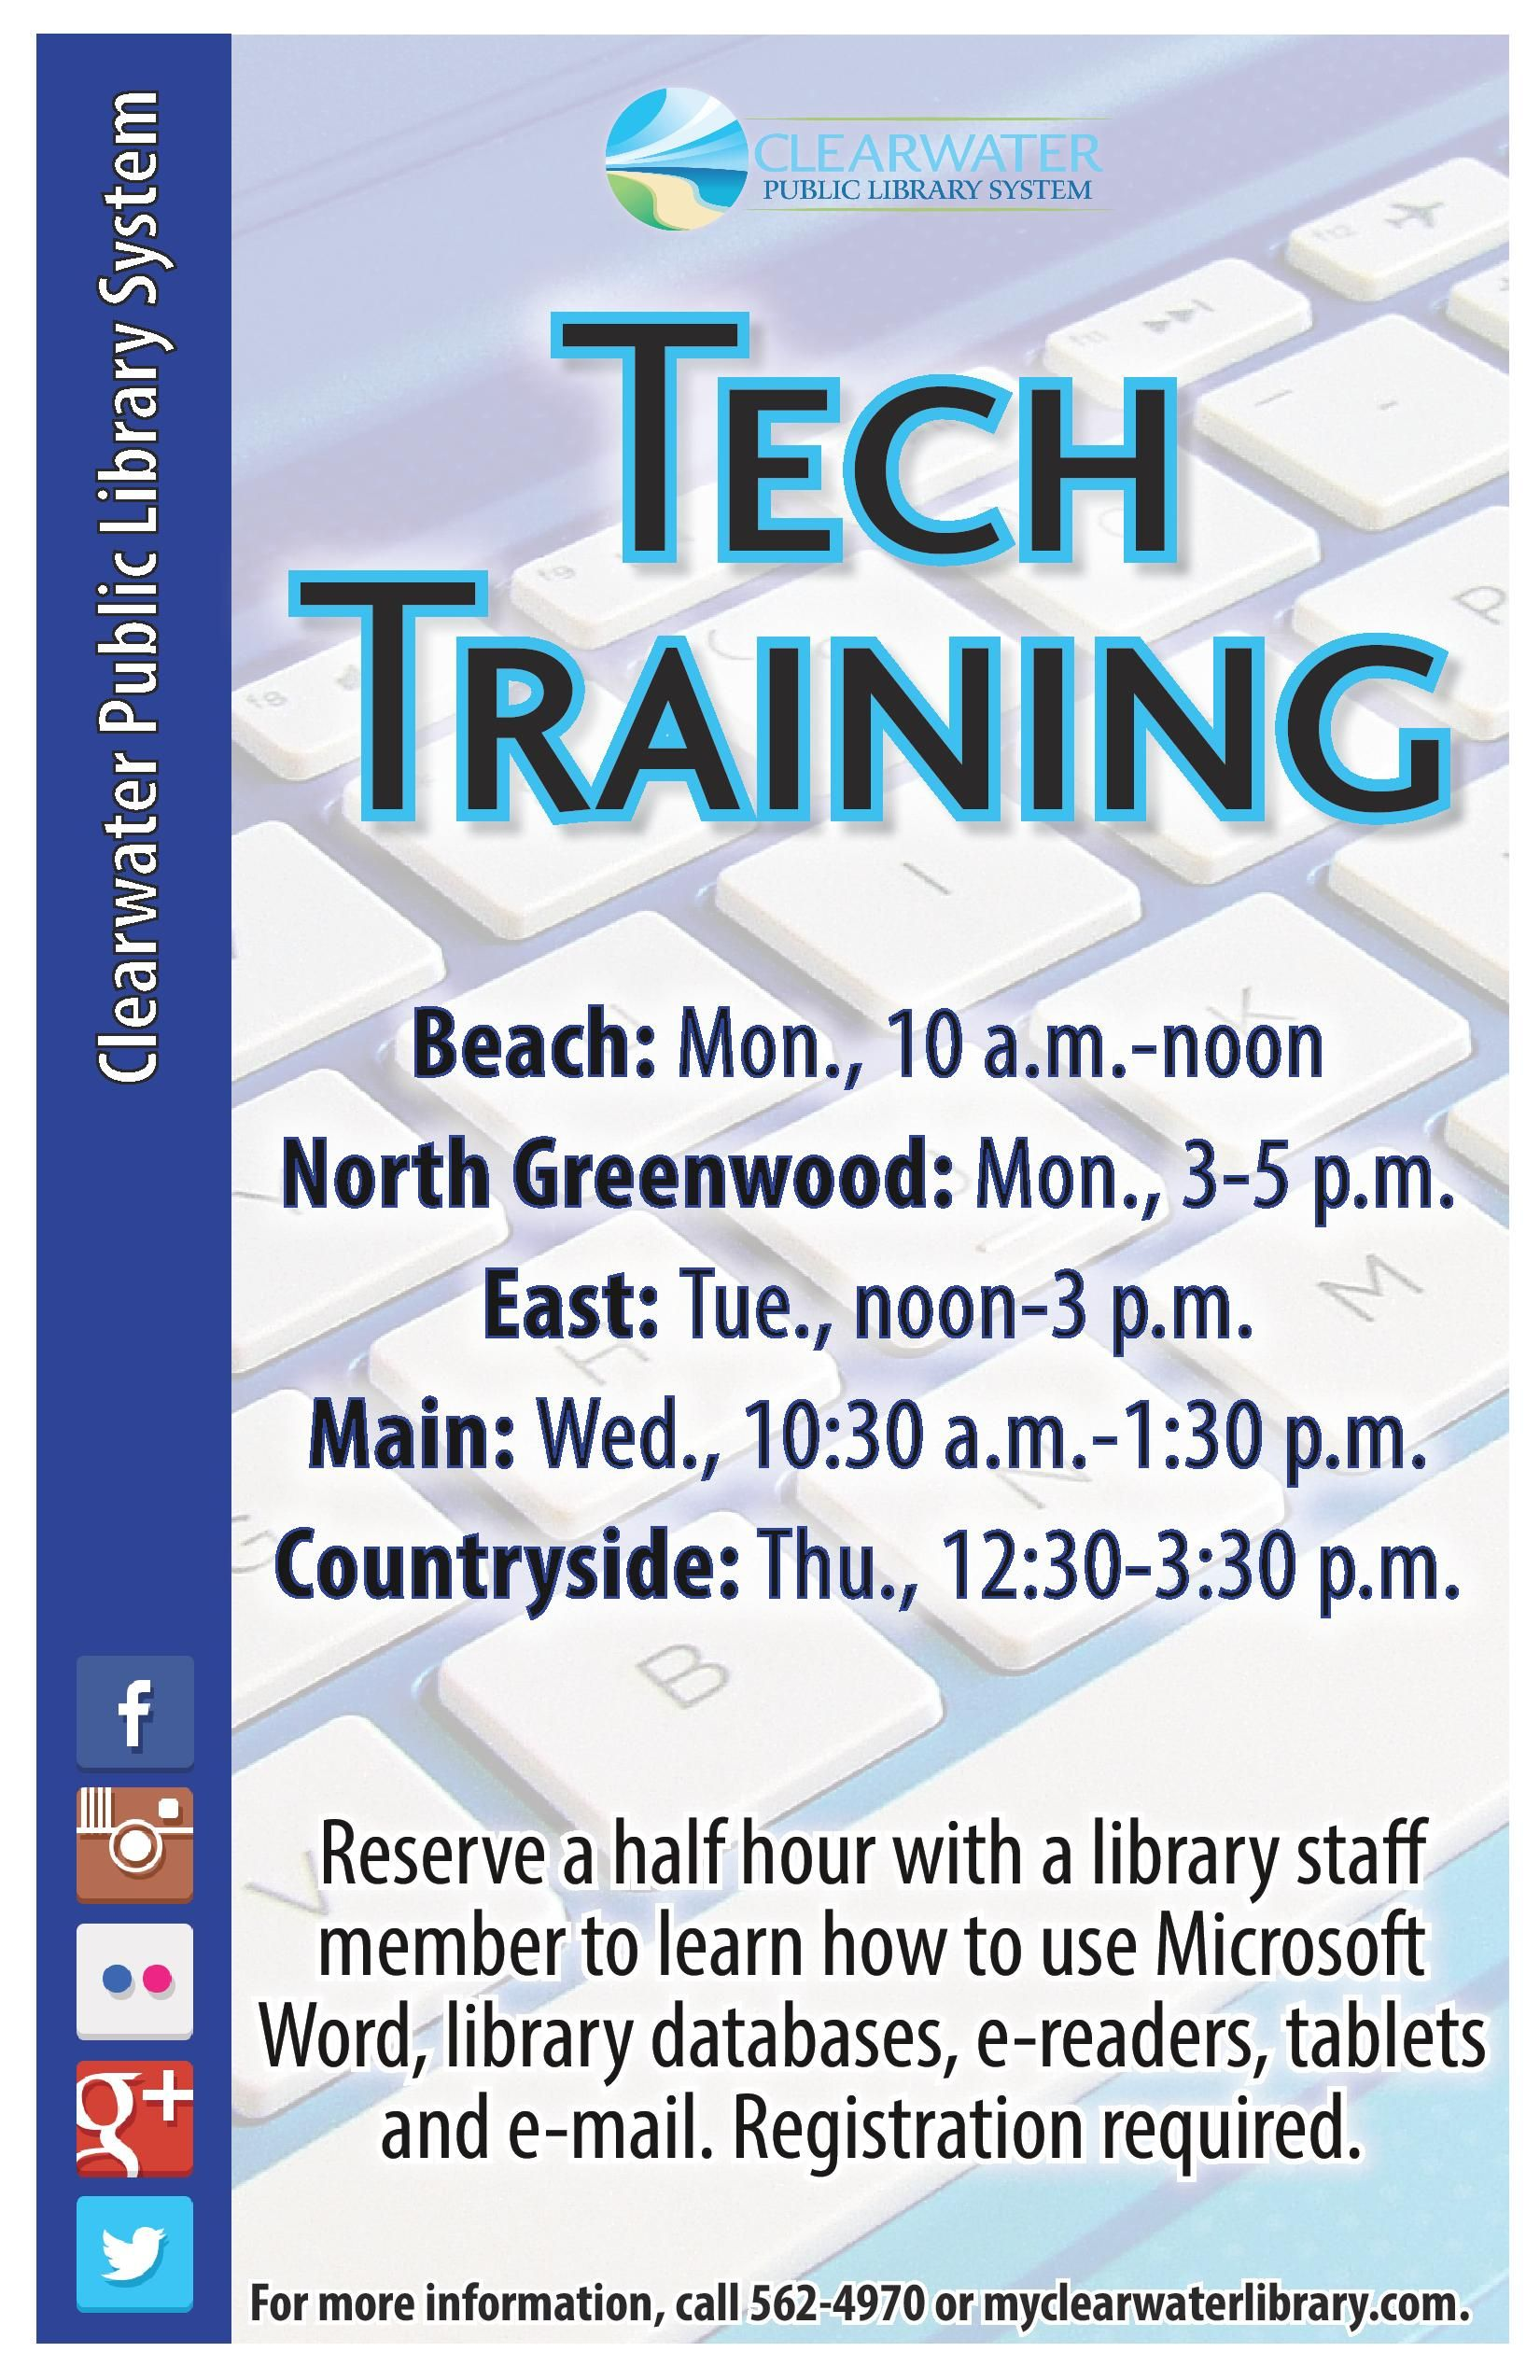 Reserve a half hour with a library staff member to learn